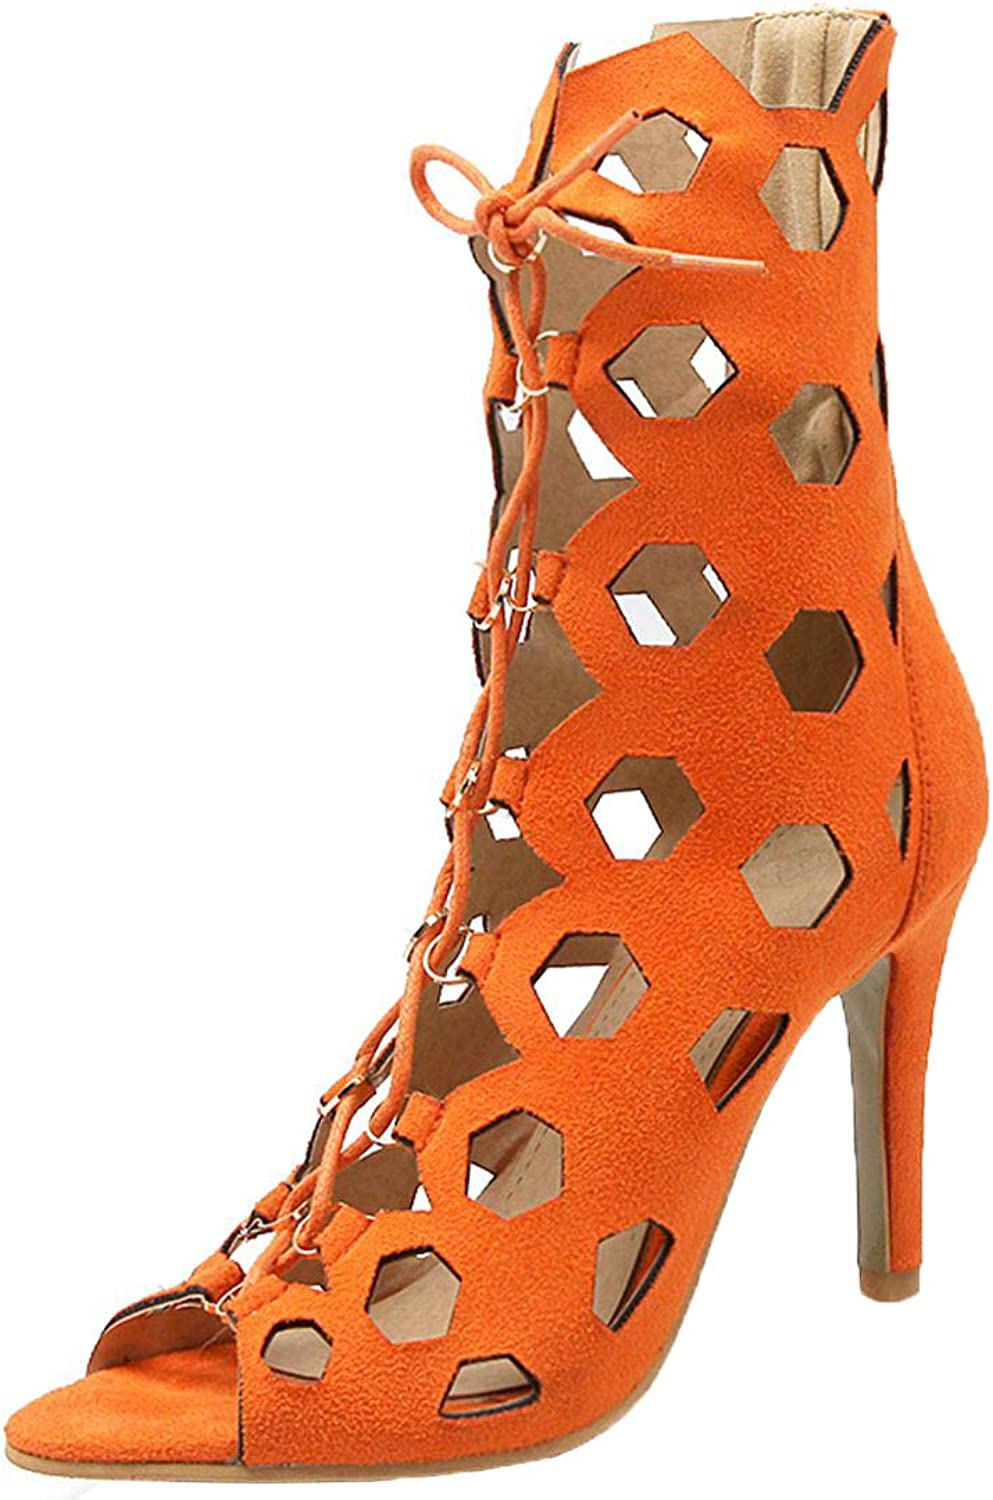 Vitalo Womens Caged Lace Up Peep Toe Sandals Gladiator Cutout Summer shoes